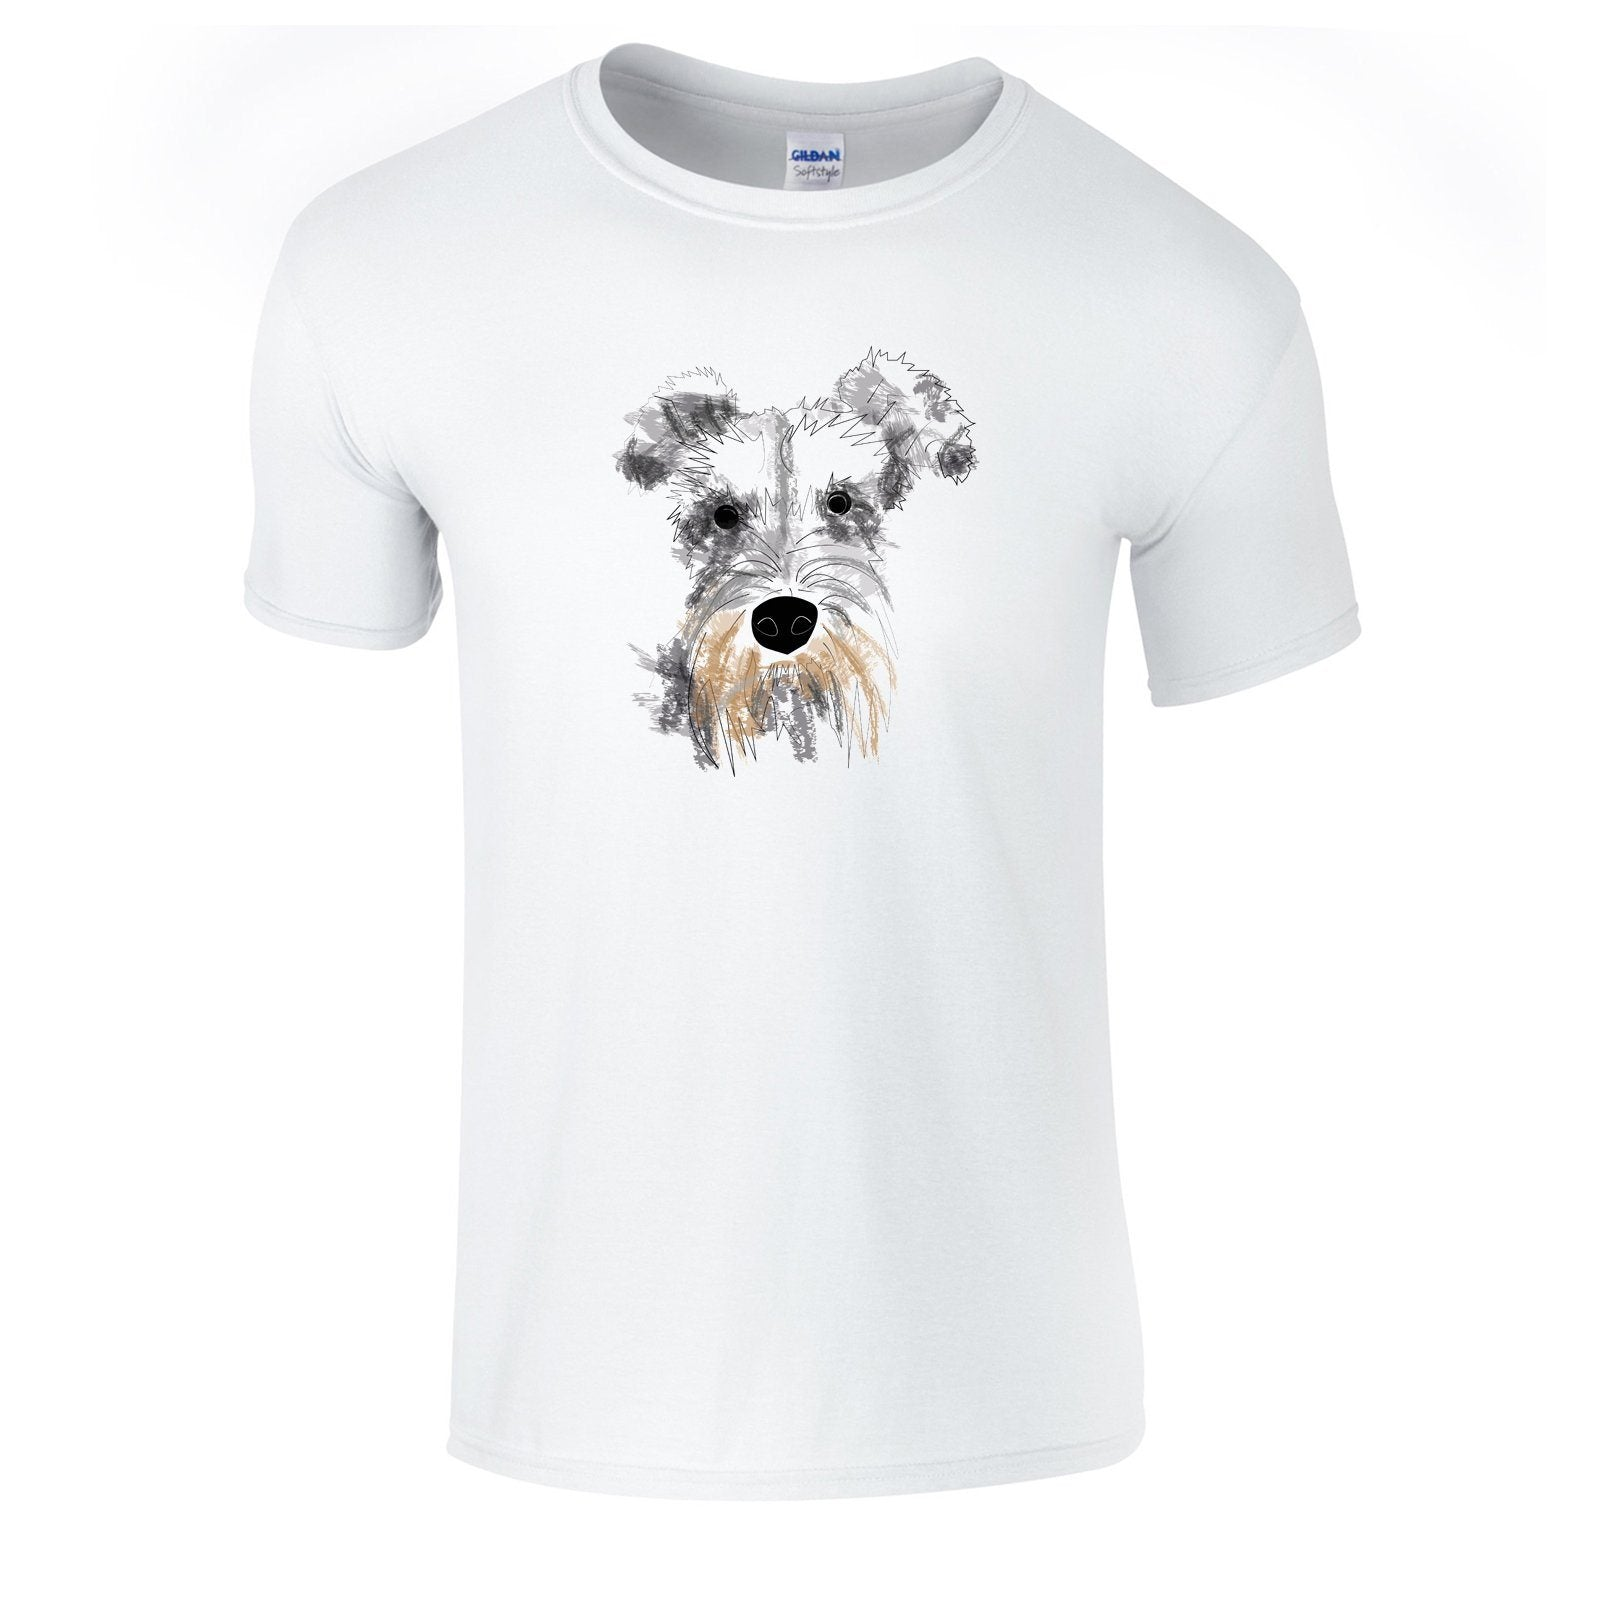 T-shirts - Schnauzer Face T-shirt